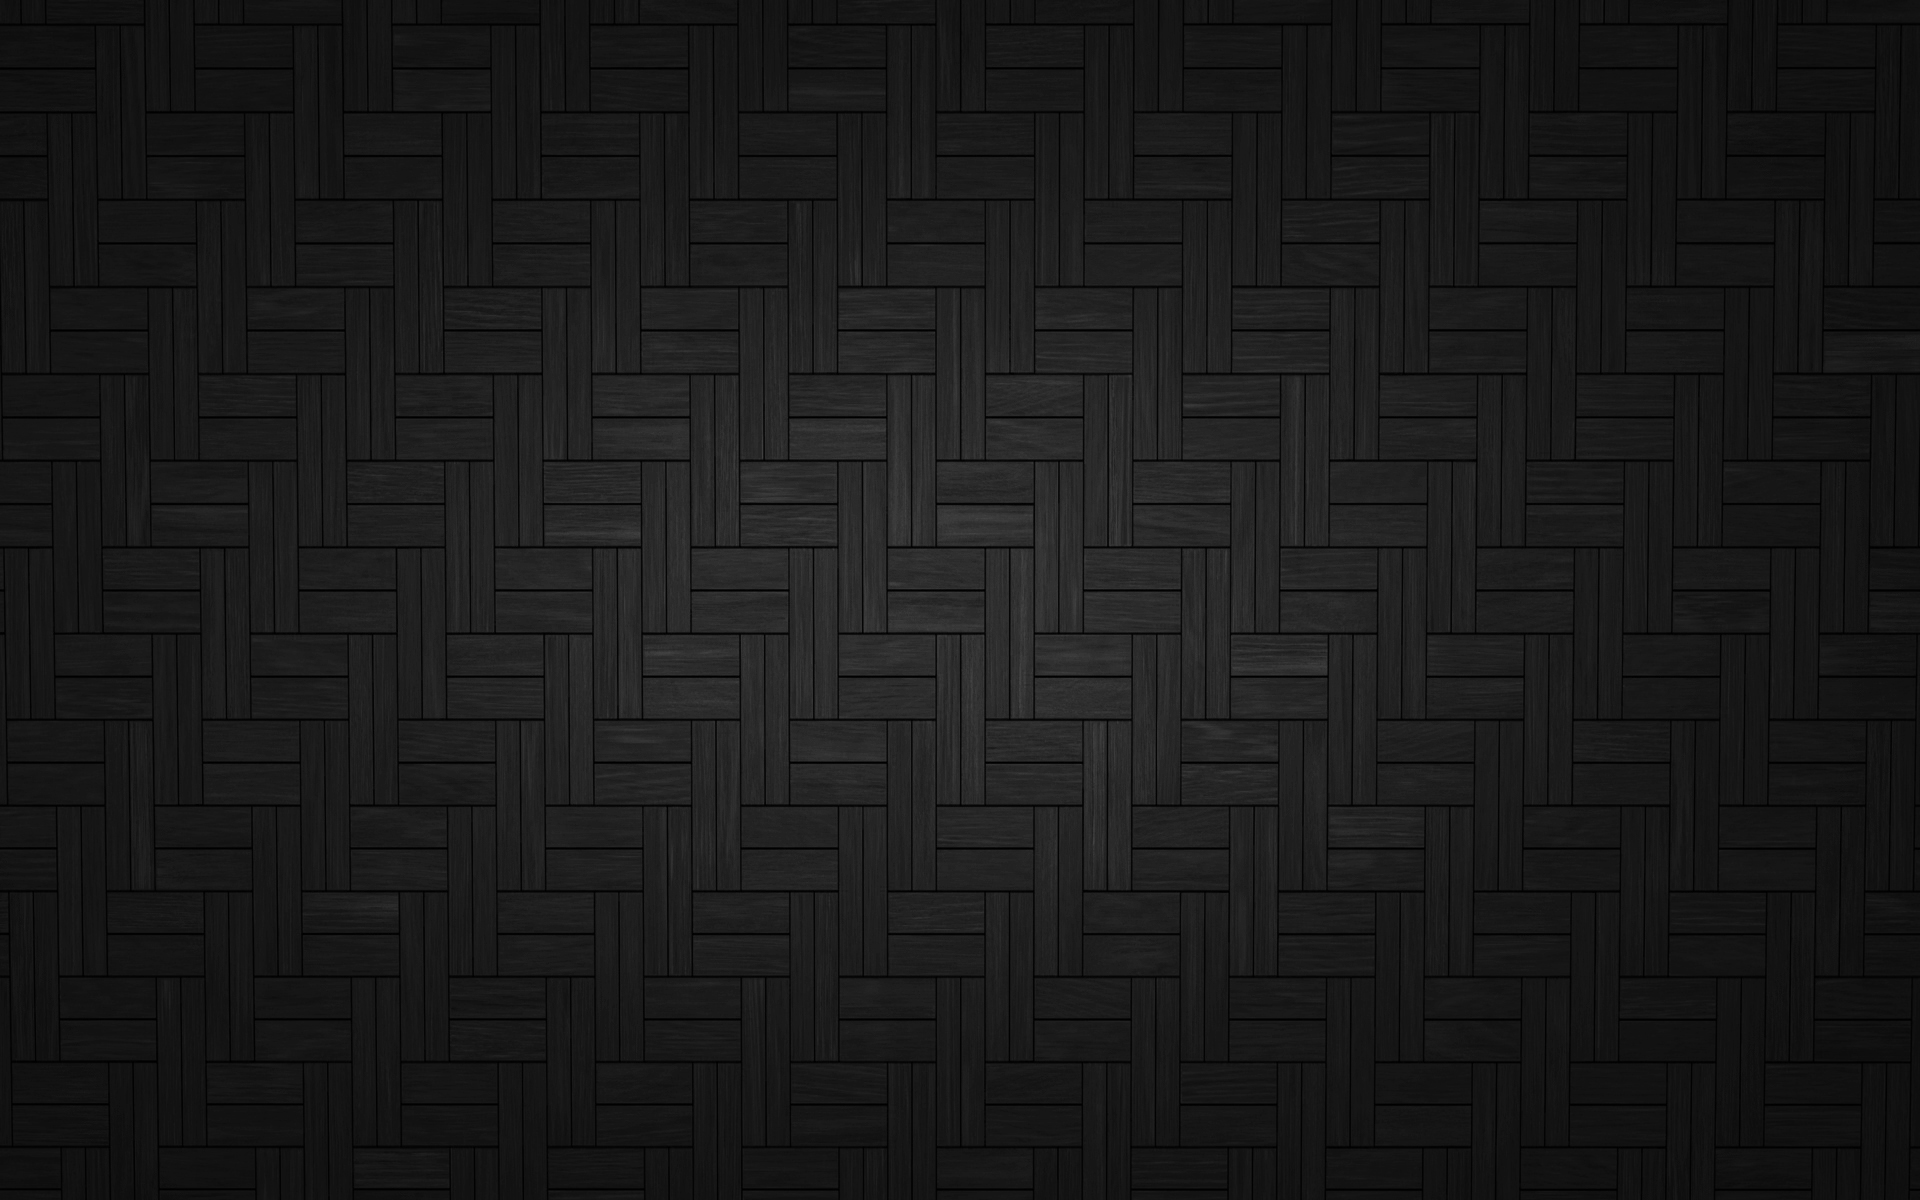 Black Wallpaper